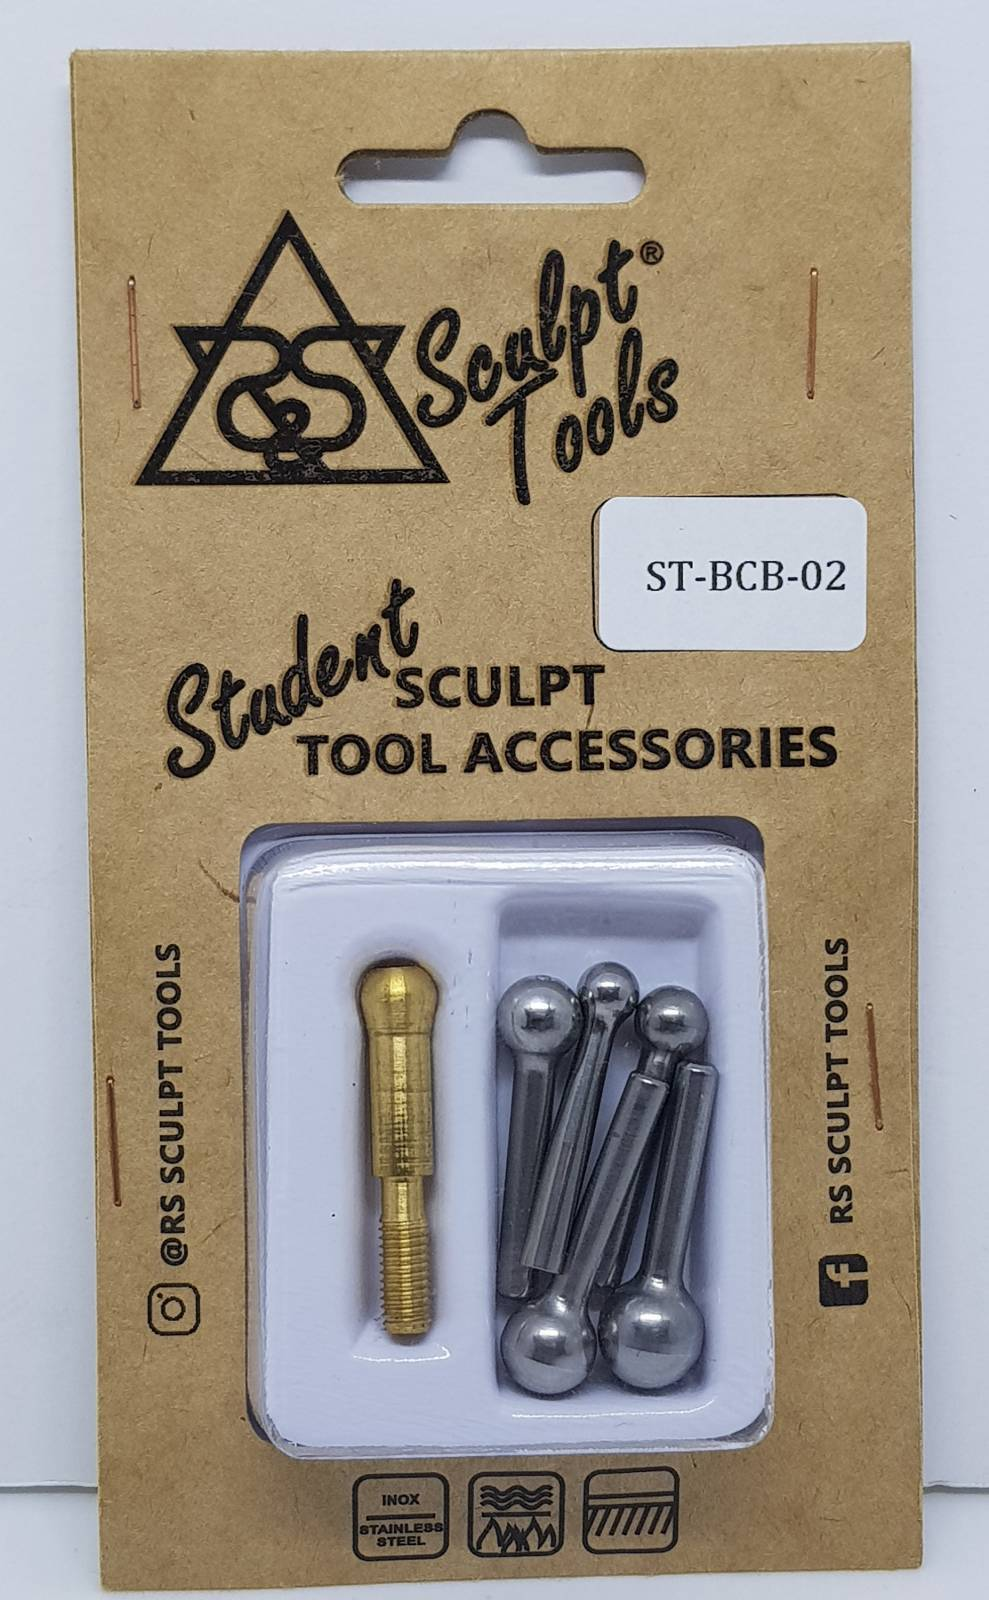 Blister with five 6 mm to 10 mm bolters and tweezers for use on the interchangeable cable